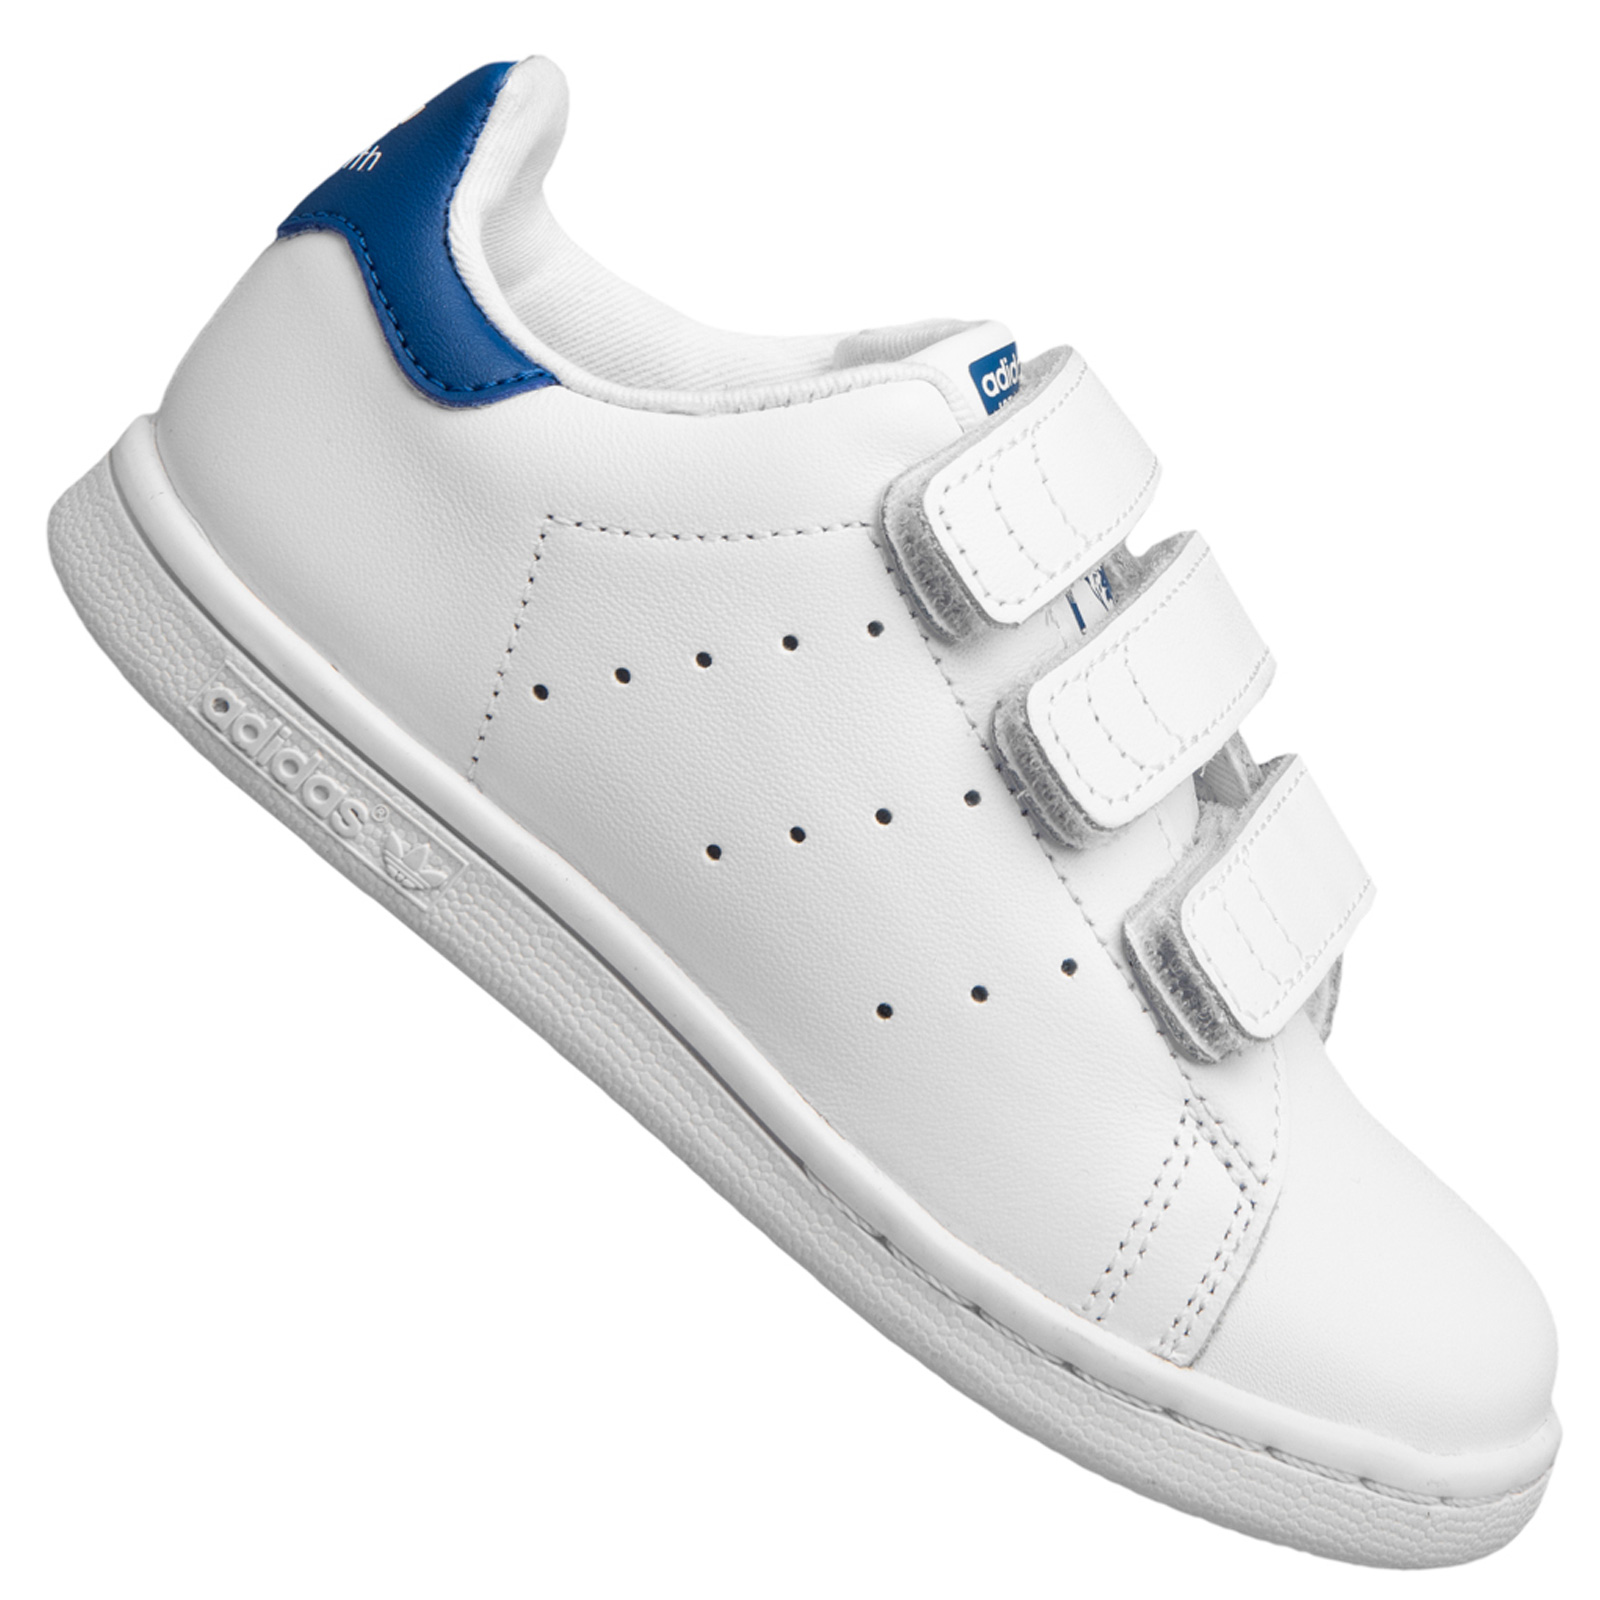 buy popular 0c15f a6a46 adidas Originals Stan Smith Sneaker Kinder Turnschuhe Leder Schuhe Weiß  Blau 27